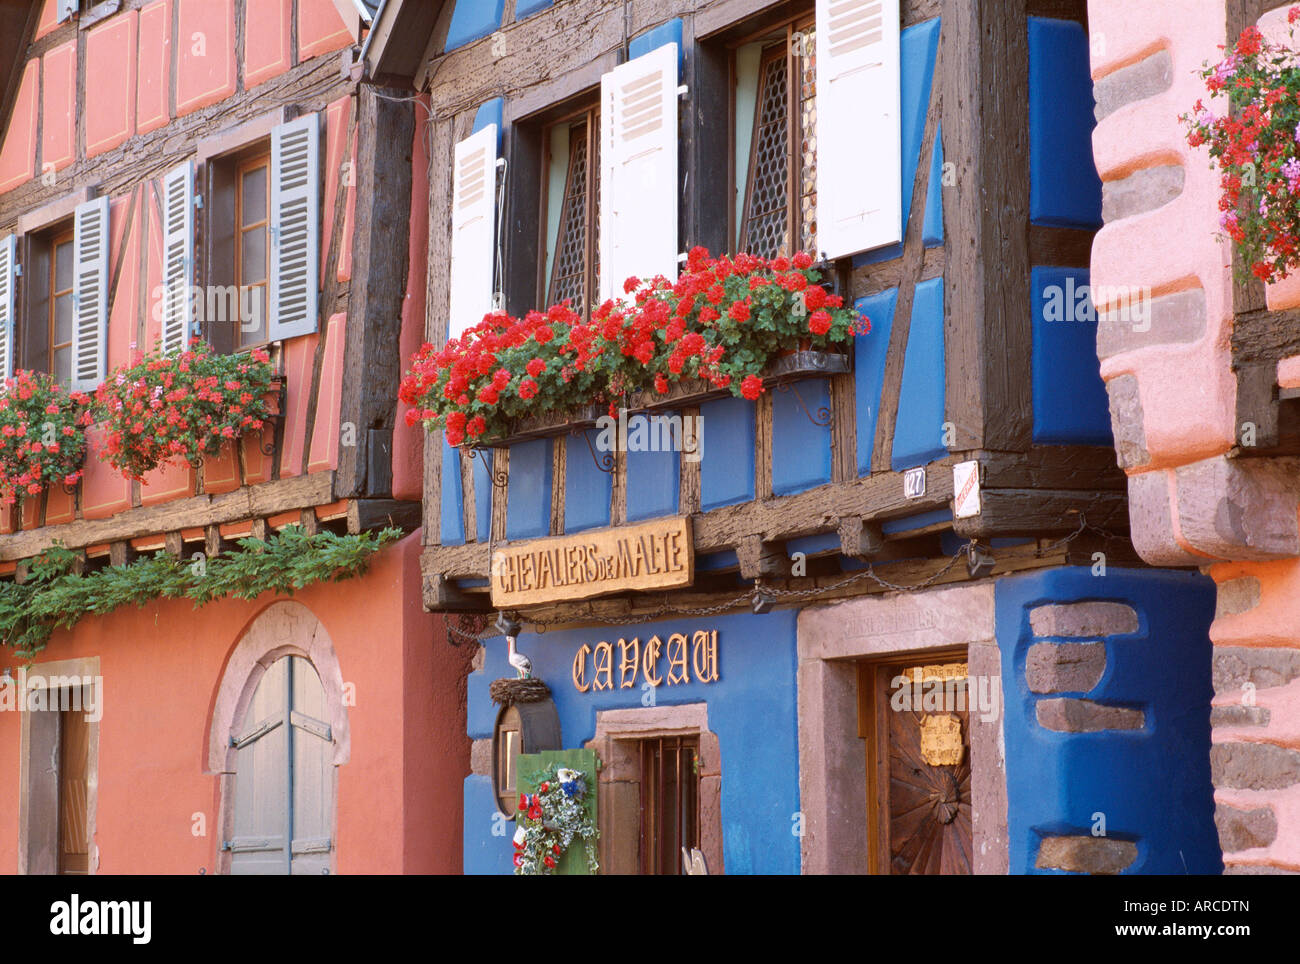 Exterior of blue house with windowboxes of geraniums, Niedermorschwihr, Haute-Rhin, Alsace, France, Europe Stock Photo